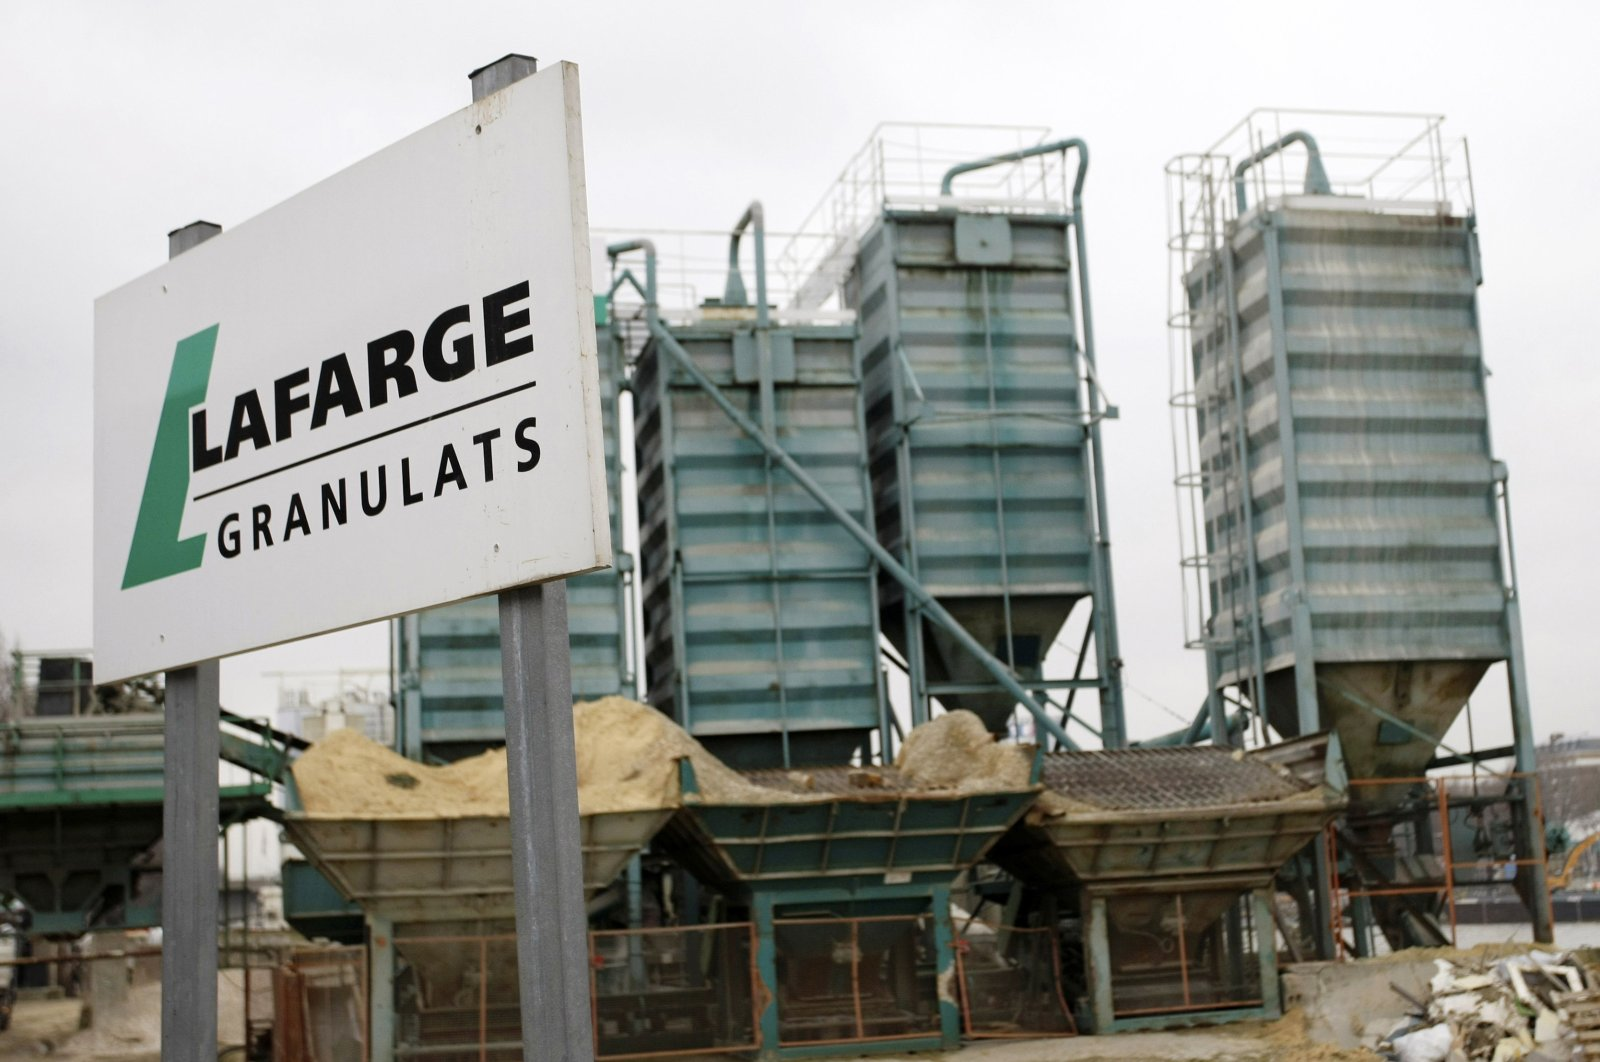 A Lafarge facility is pictured in Paris, France, Feb.18, 2009. (AP File Photo)